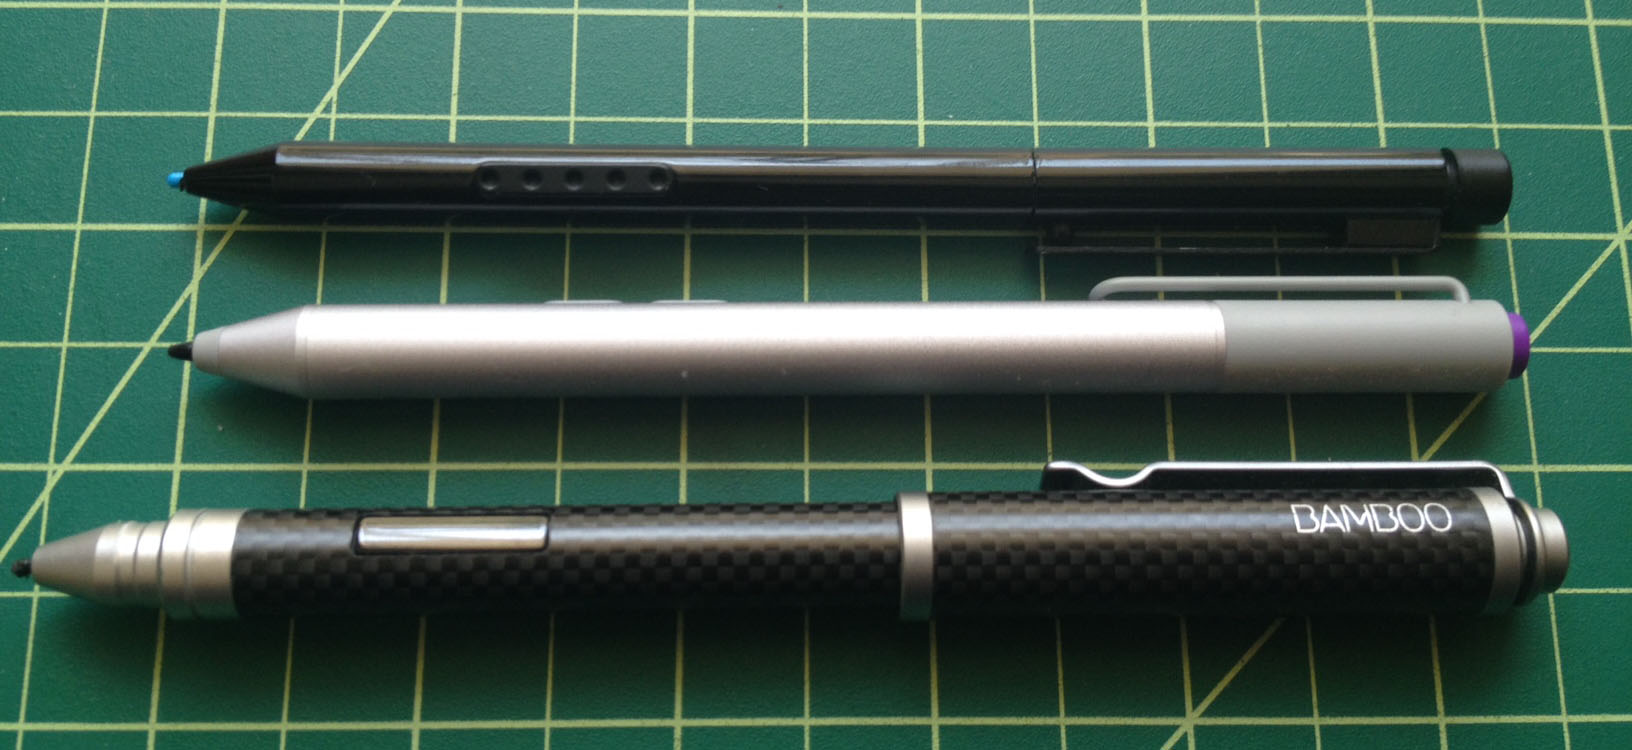 The new pen is the same length as the current Surface Pro stylus, but it is slightly wider and the required AAAA battery adds nice weight. The Wacom Bamboo Feel Stylus - Carbon is much longer with its cap on. The Bamboo's weight tends to tip toward the cap, whereas the weight of the new Surface pen feels nicely balanced.